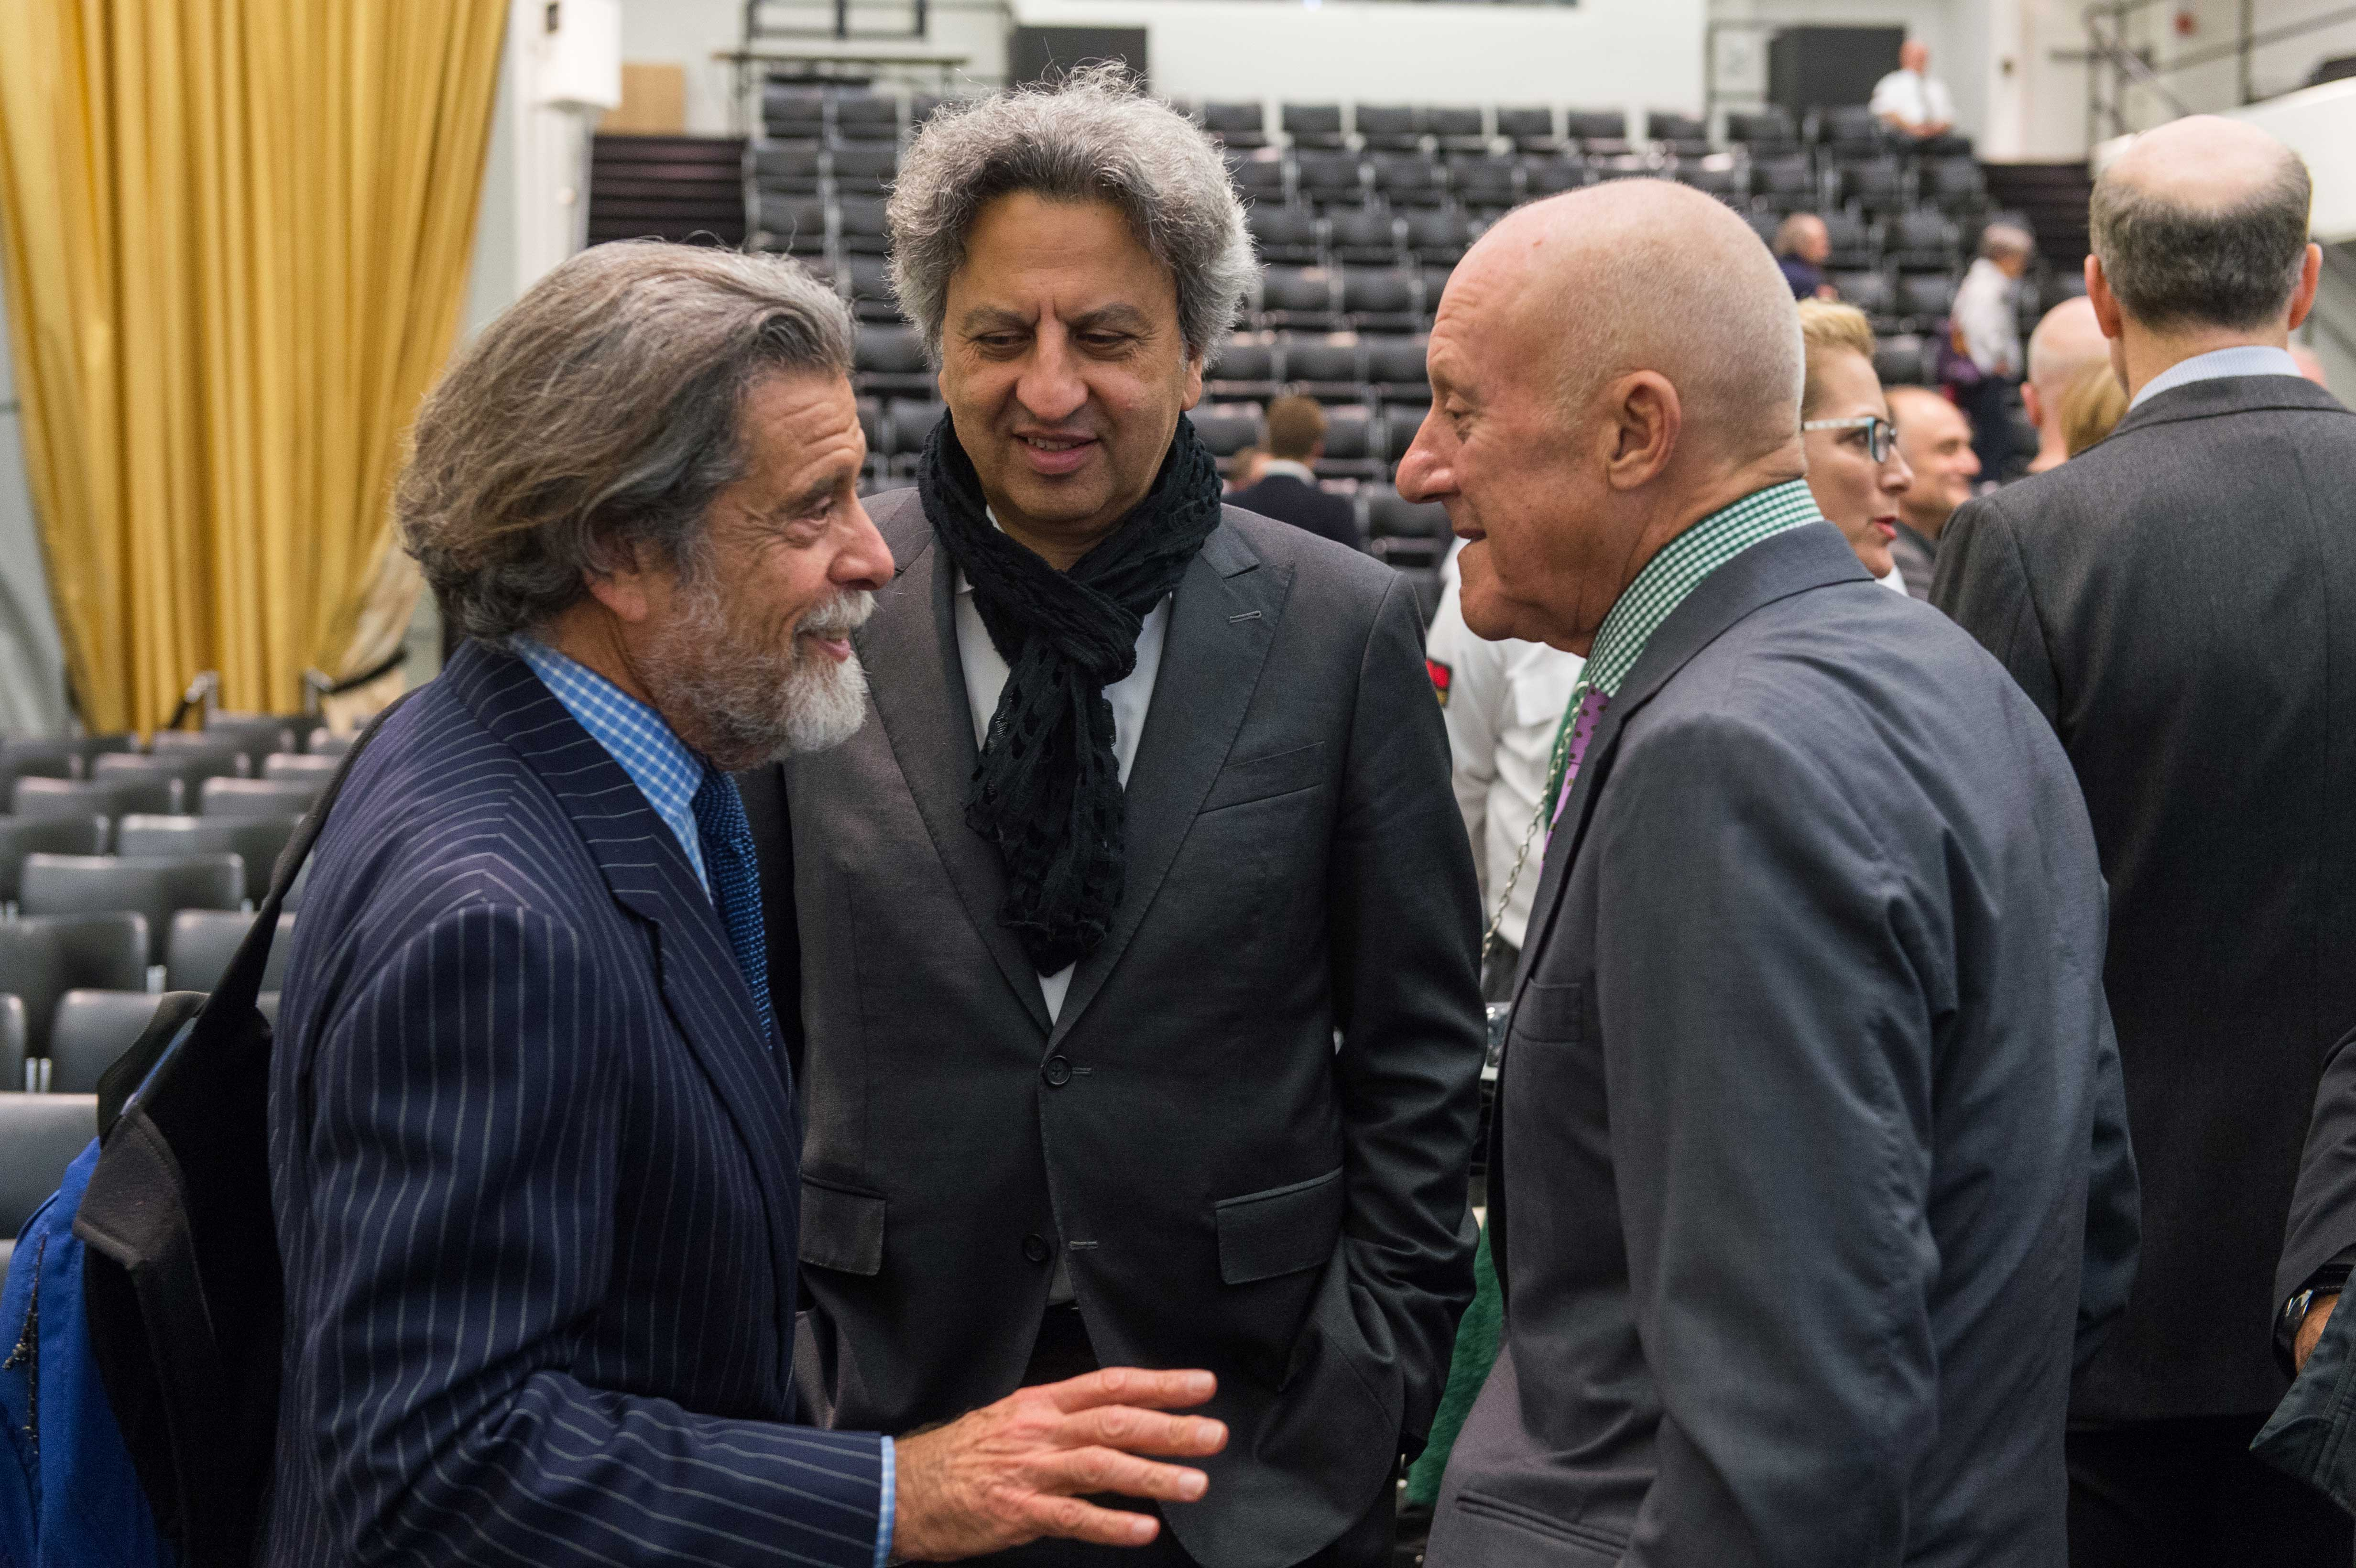 Ronald M. Druker, president of the Druker Company, with GSD Dean Mohsen Mostafavi with Architect Norman Foster.